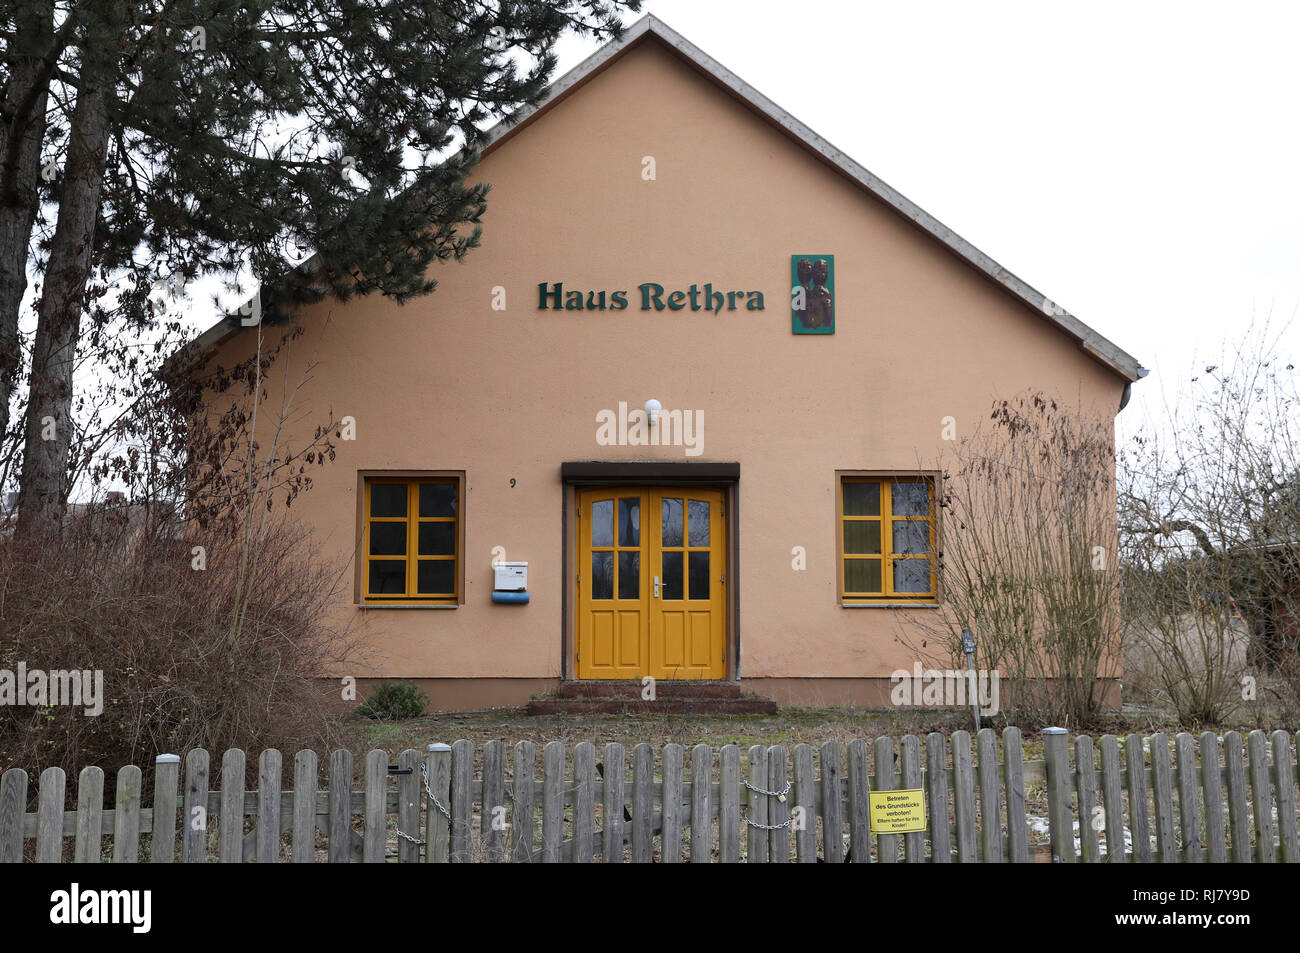 Alt Rehse, Germany. 05th Feb, 2019. The house where a 53-year-old defendant allegedly tortured a young woman to death. The Neubrandenburg Regional Court has been hearing the case since 05.02.2019. A 53-year-old man had tied up his girlfriend and let her die because he felt persecuted. The first sentence was overturned. Credit: Bernd Wüstneck/dpa/Alamy Live News - Stock Image